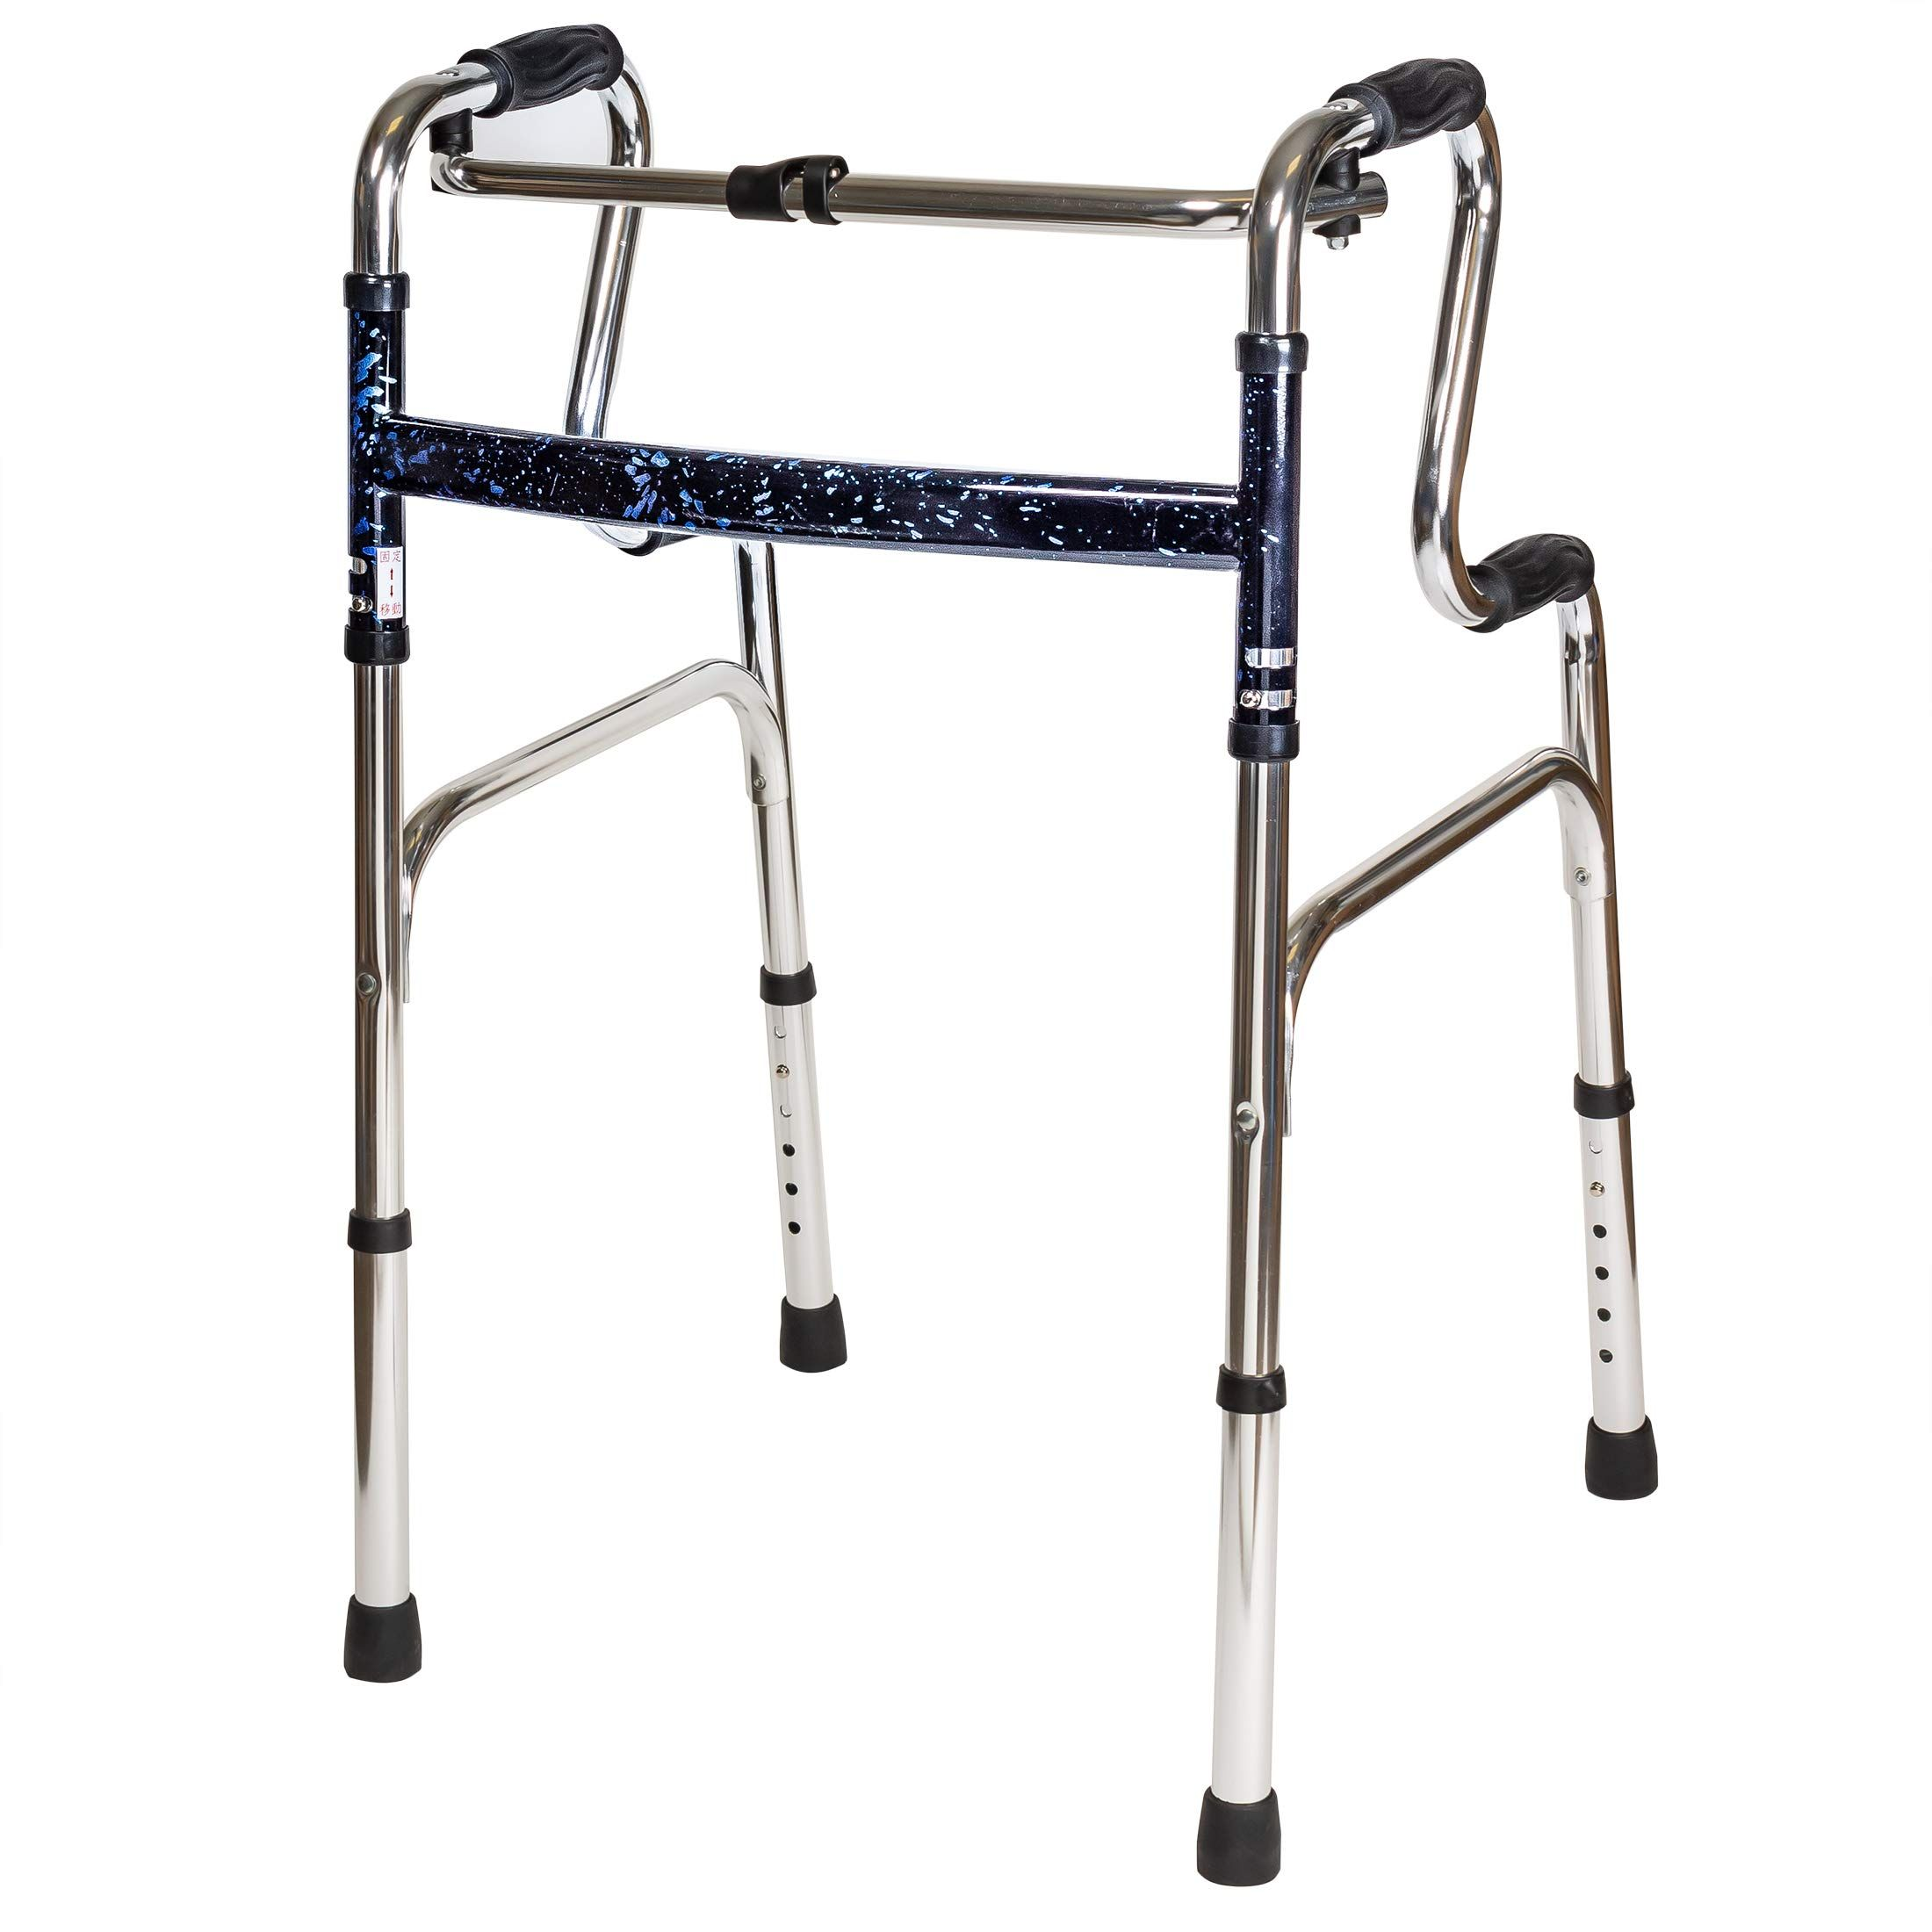 Pin on Mobility Aids and Equipment